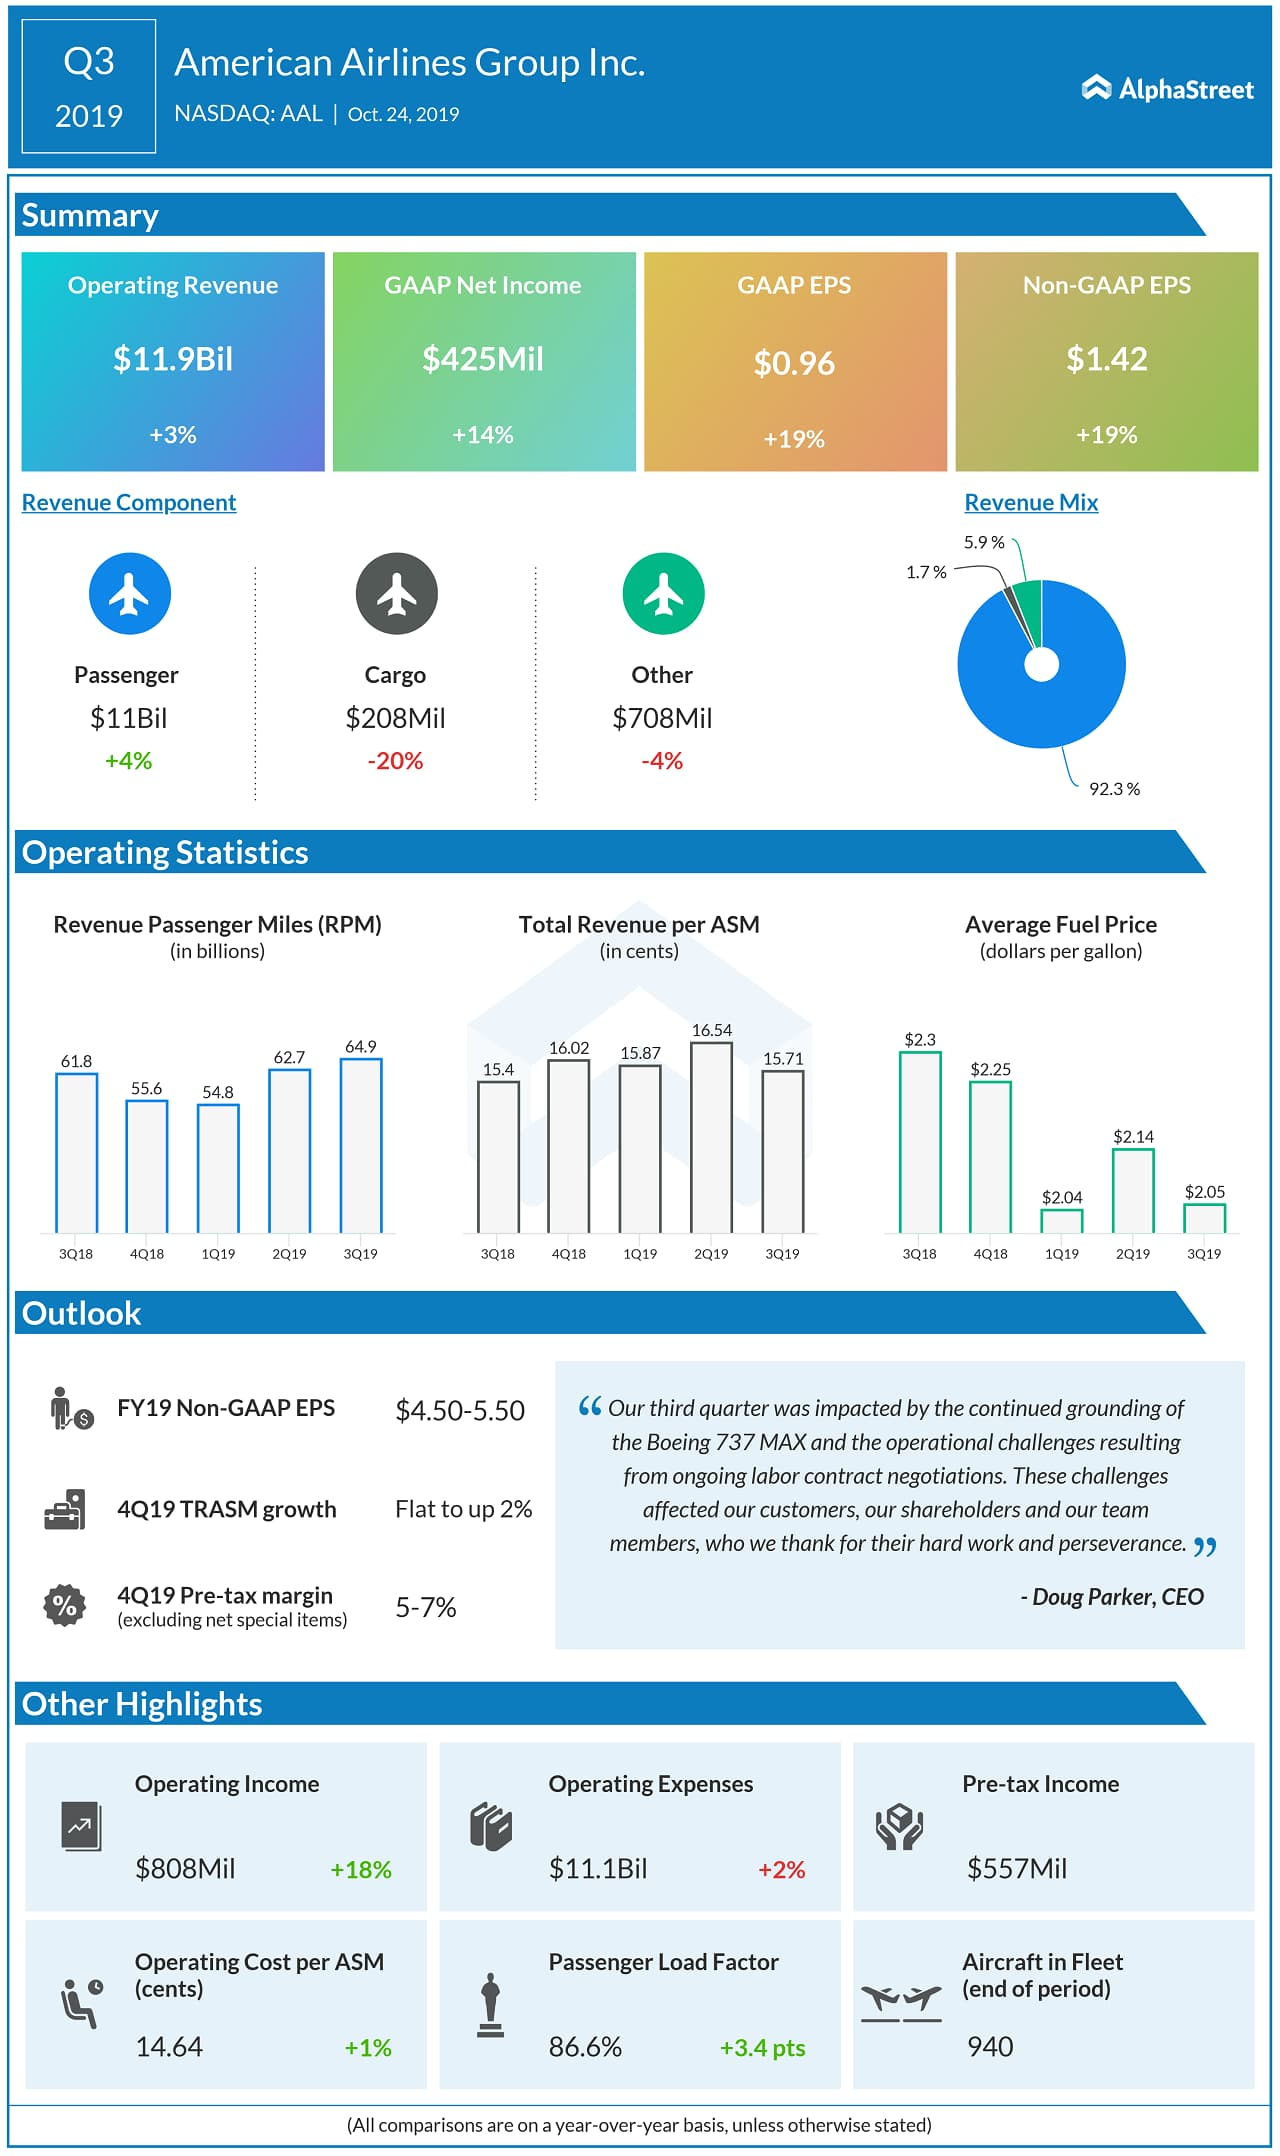 American Airlines Q3 2019 earnings results